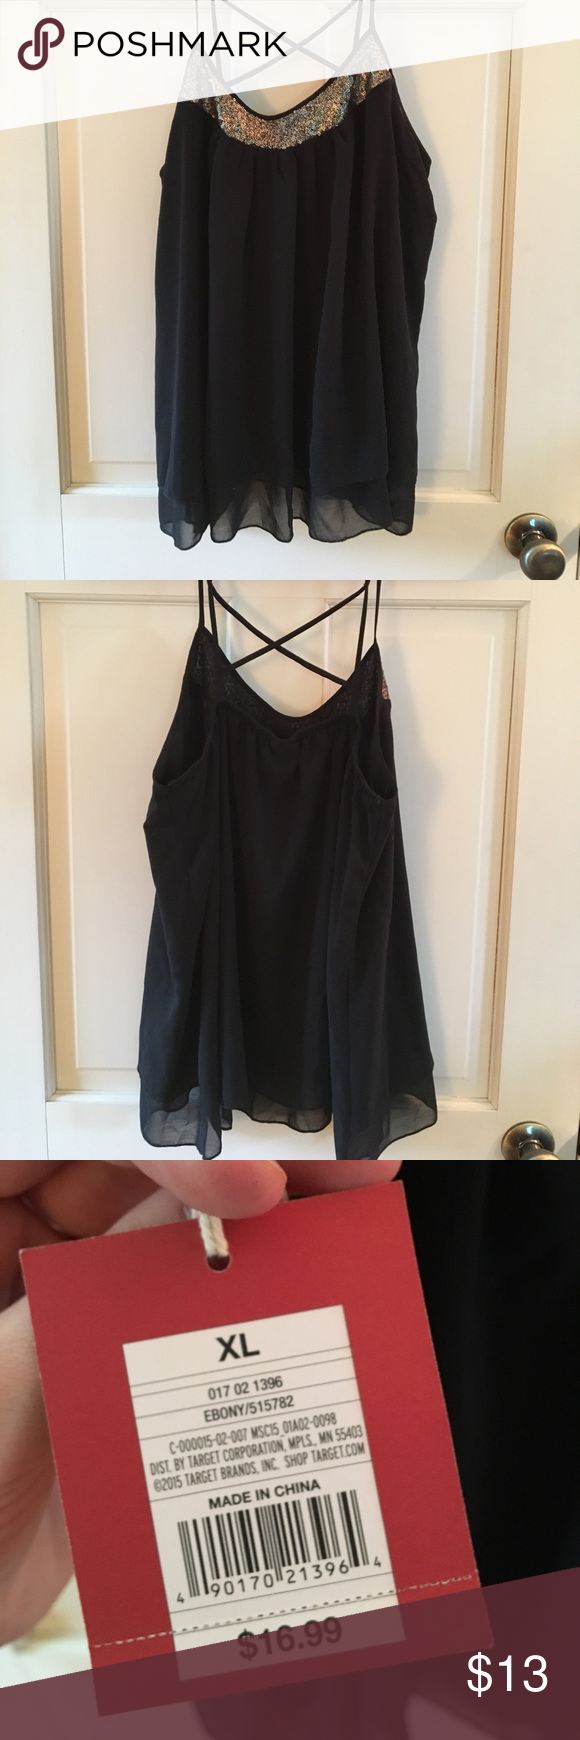 Brand new black embellished tank Mossimo tank top with gold sequin embellishment. Very cute! Mossimo Supply Co. Tops Tank Tops